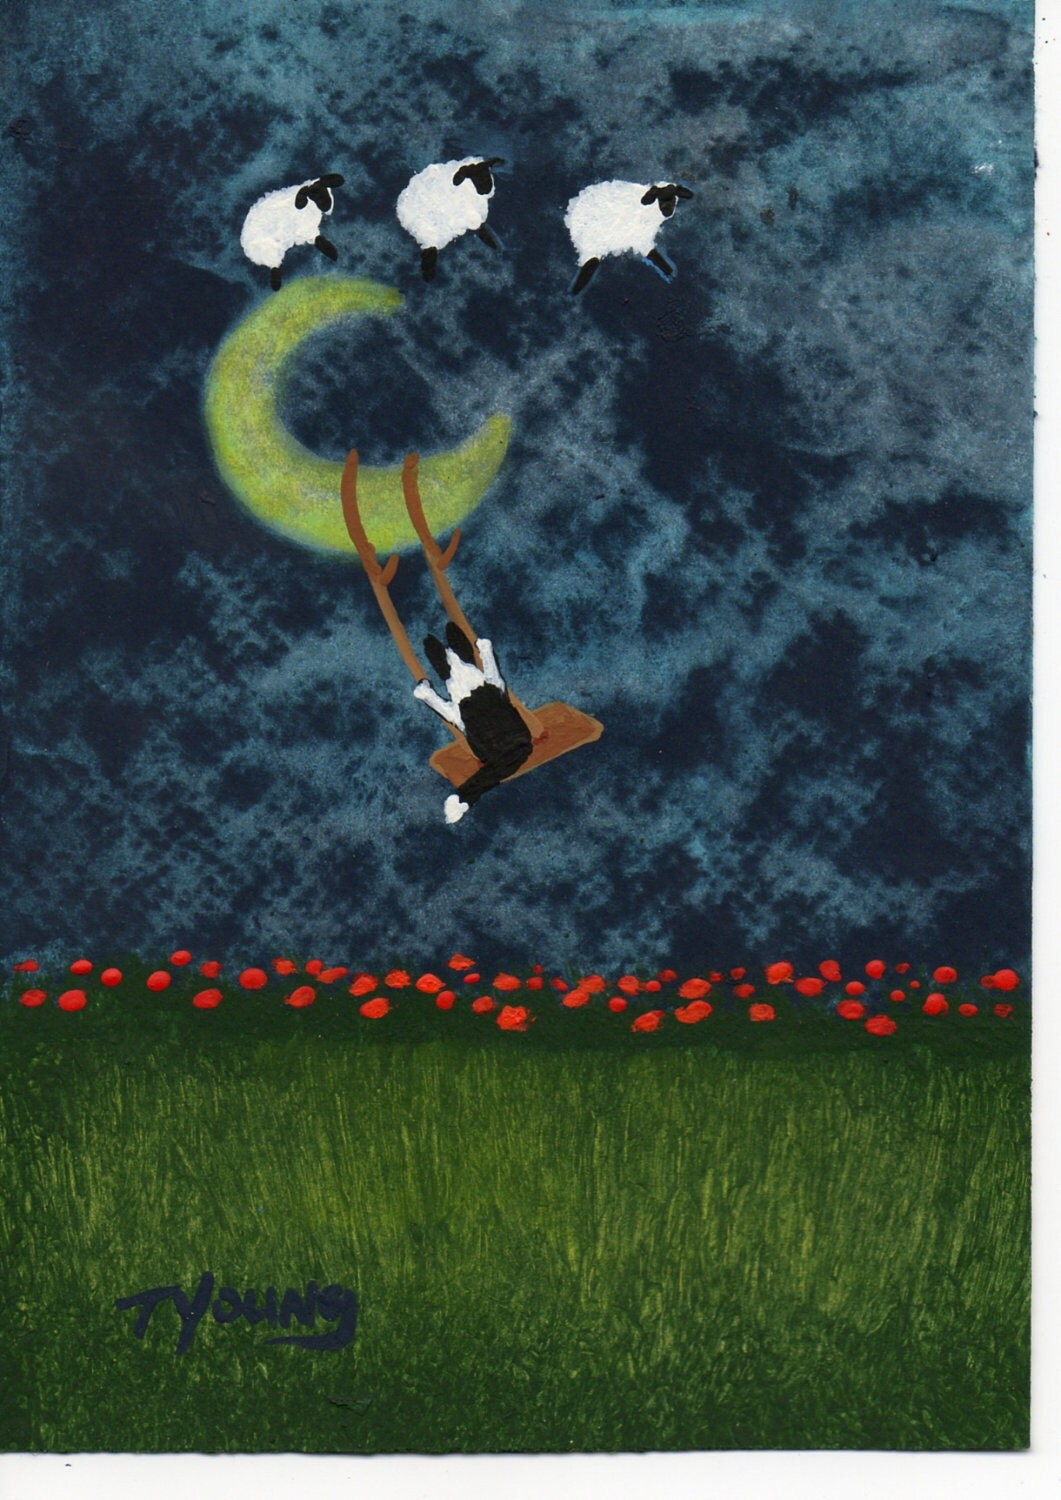 Border Collie Dog Outsider Folk Art PRINT Todd Young MOON SWING - ToddYoungArt